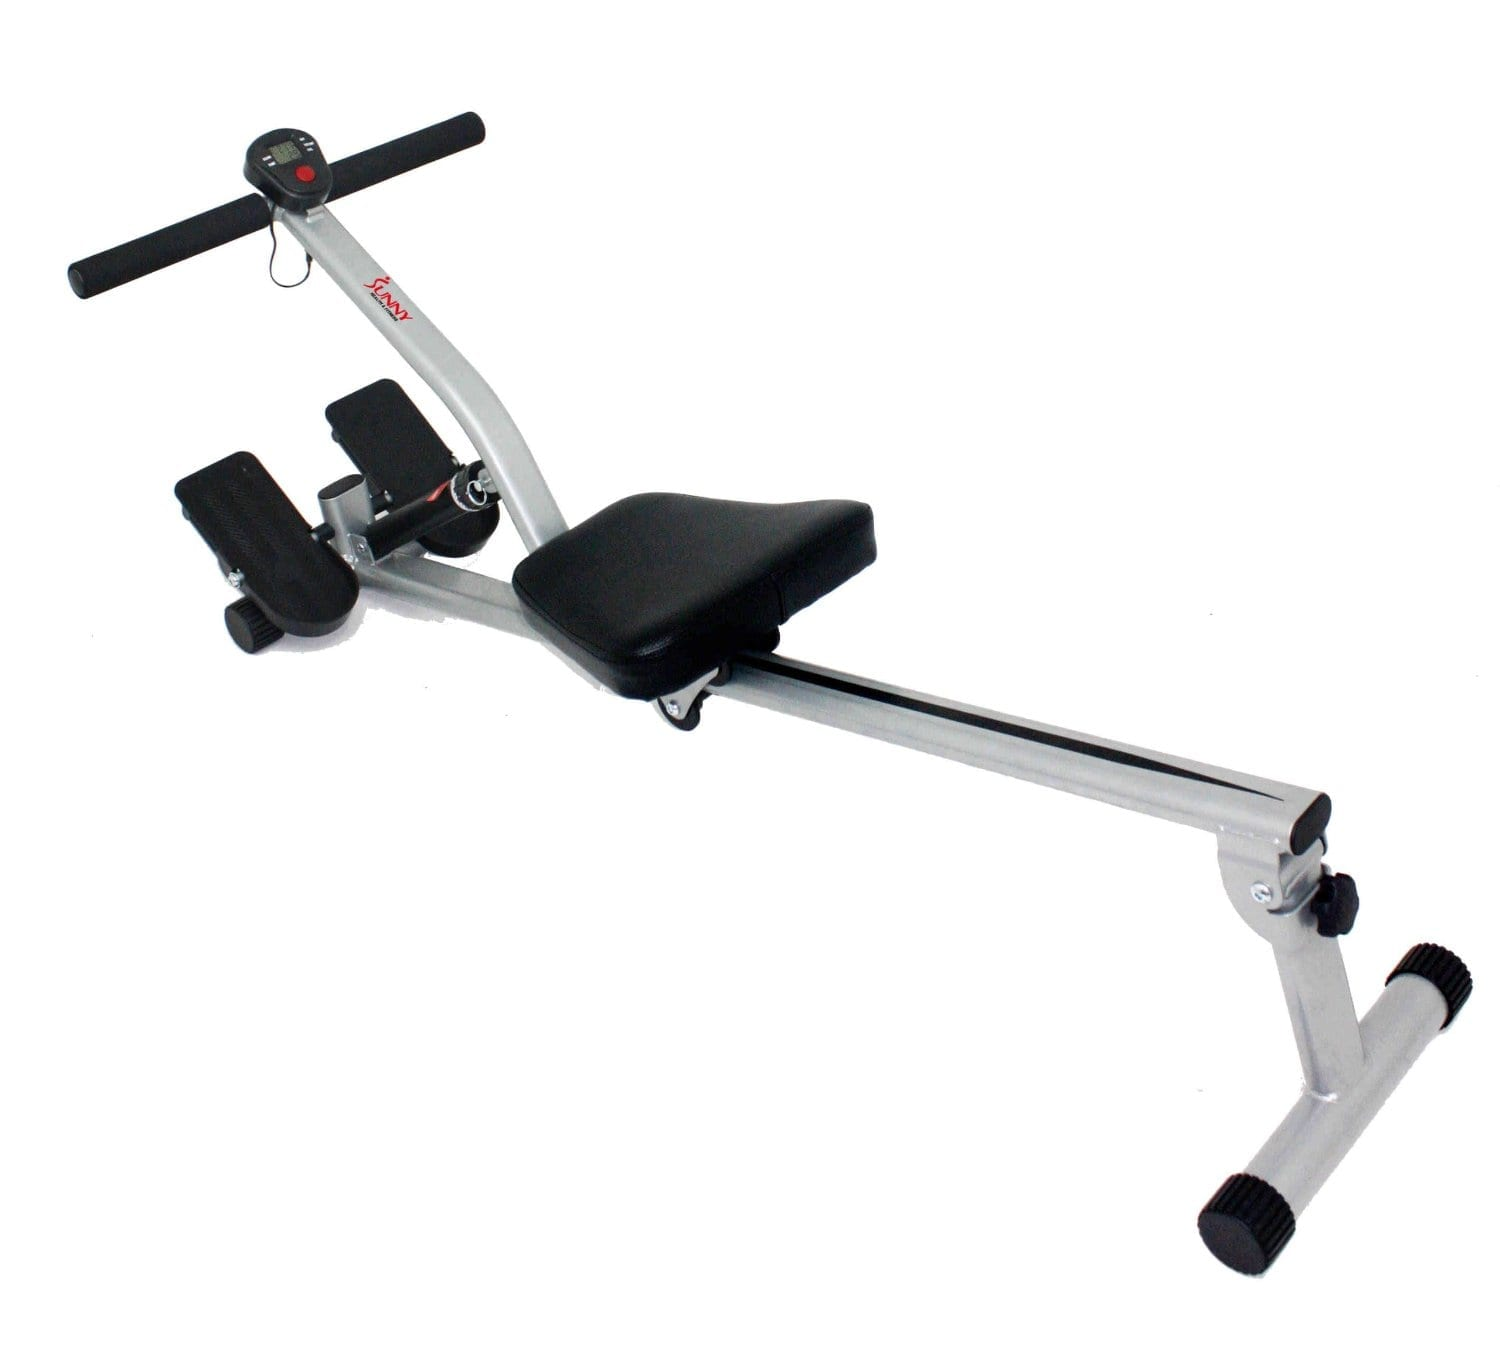 Elliptical Machine Reviews >> Sunny Health and Fitness Rowing Machine SF-RW1205 Review